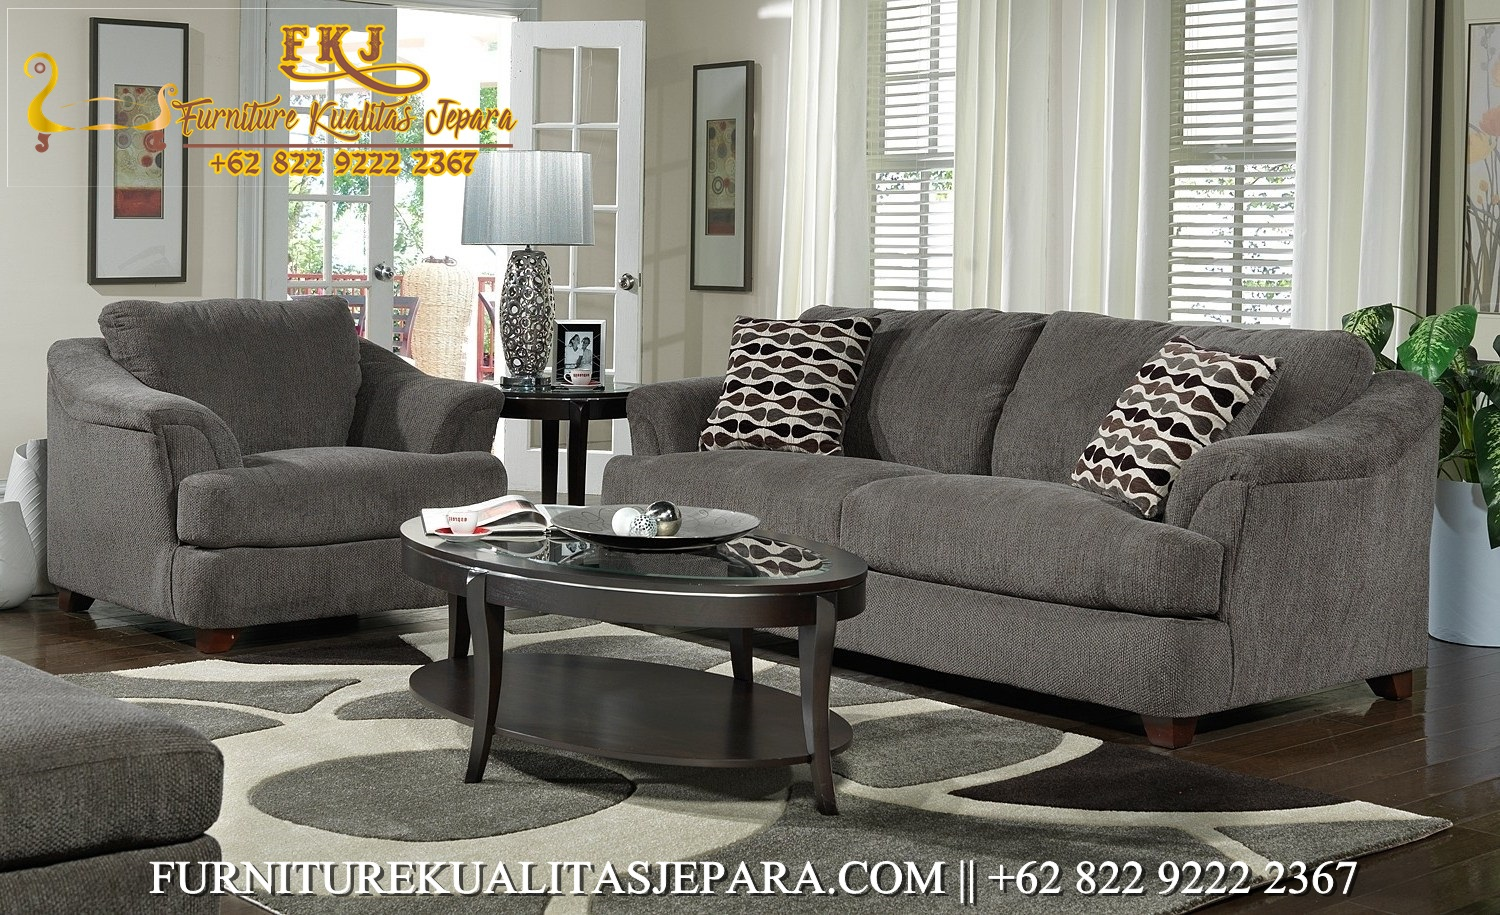 Model Sofa Tamu Minimalis Terbaru Furniture Mewah